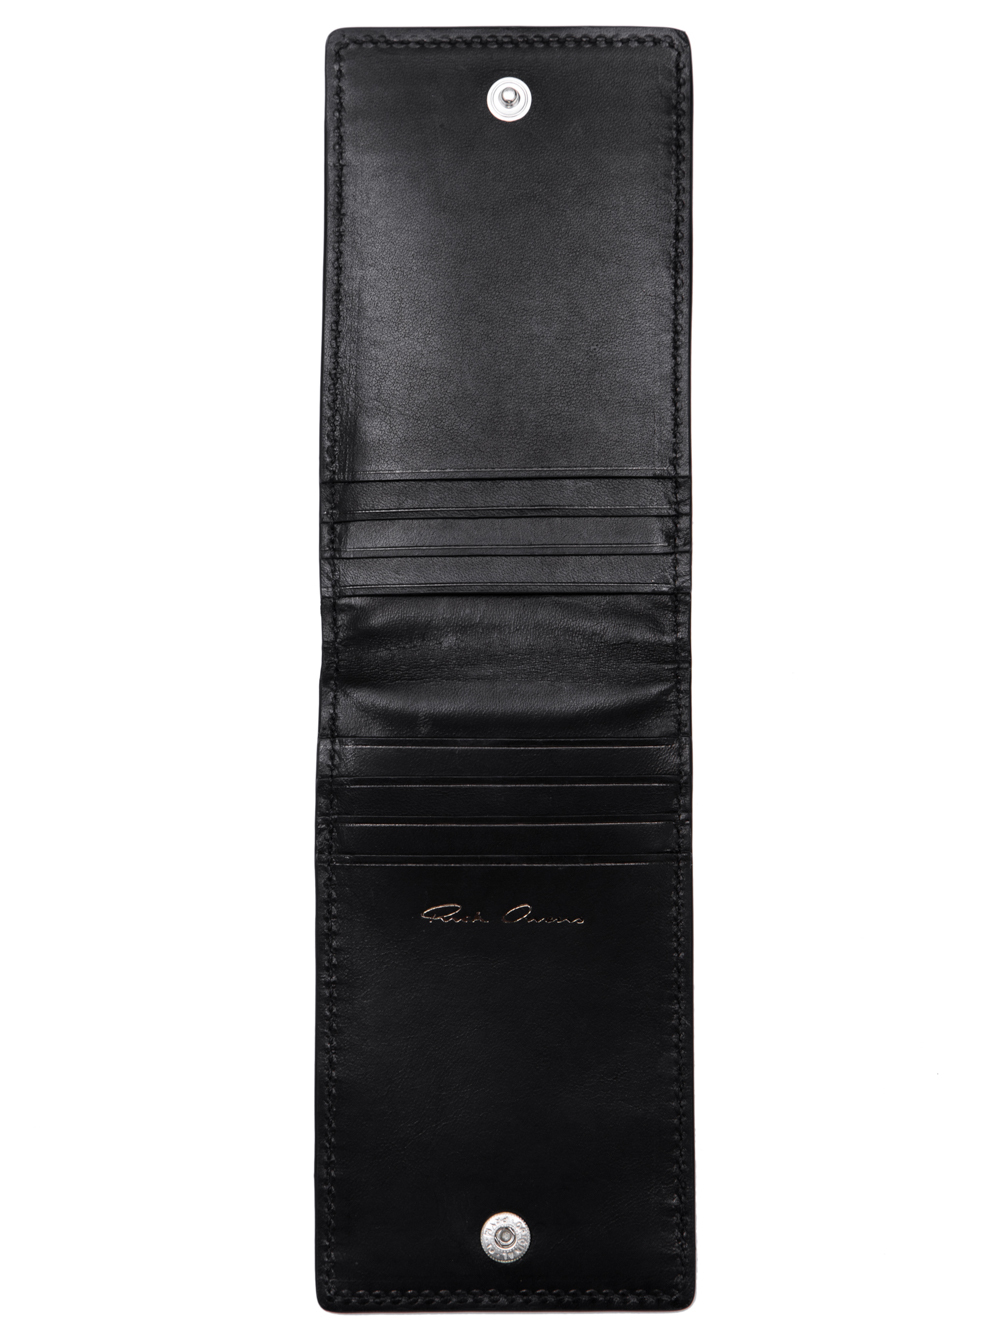 RICK OWENS SS19 BABEL BILLFOLD CREDIT CARD HOLDER IN BLACK LEATHER